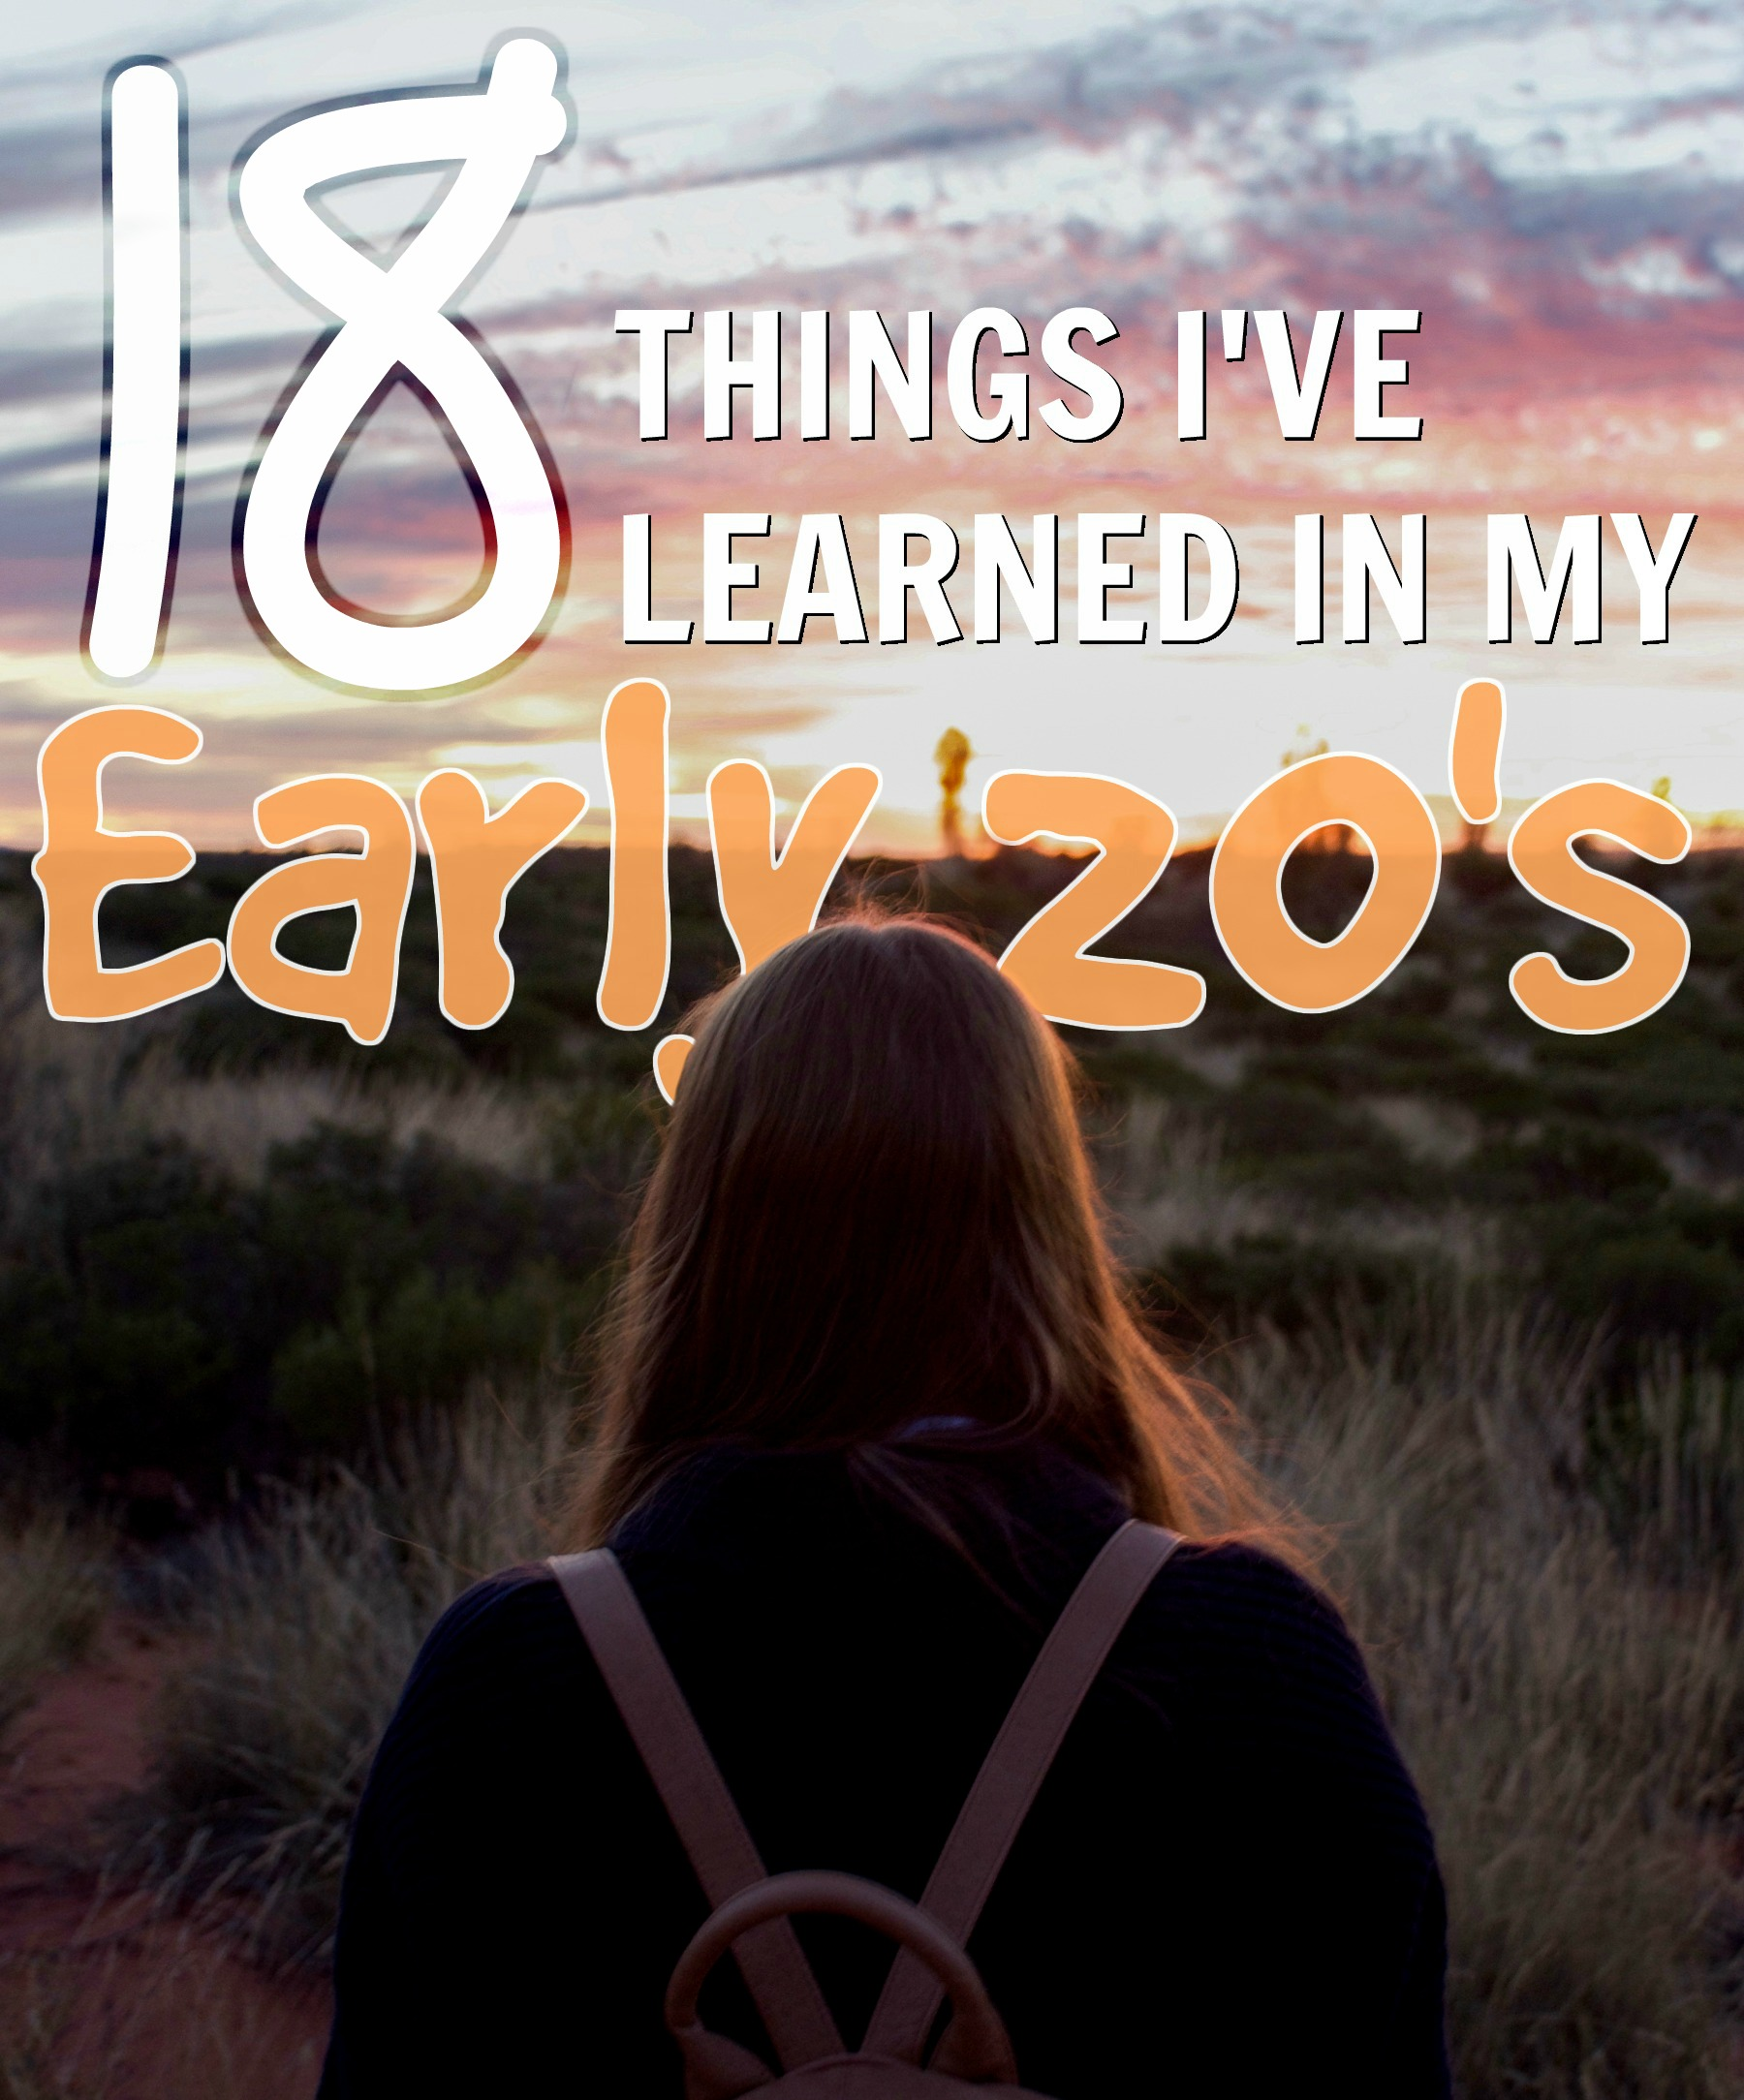 18 Things I've Learned in my Early 20's